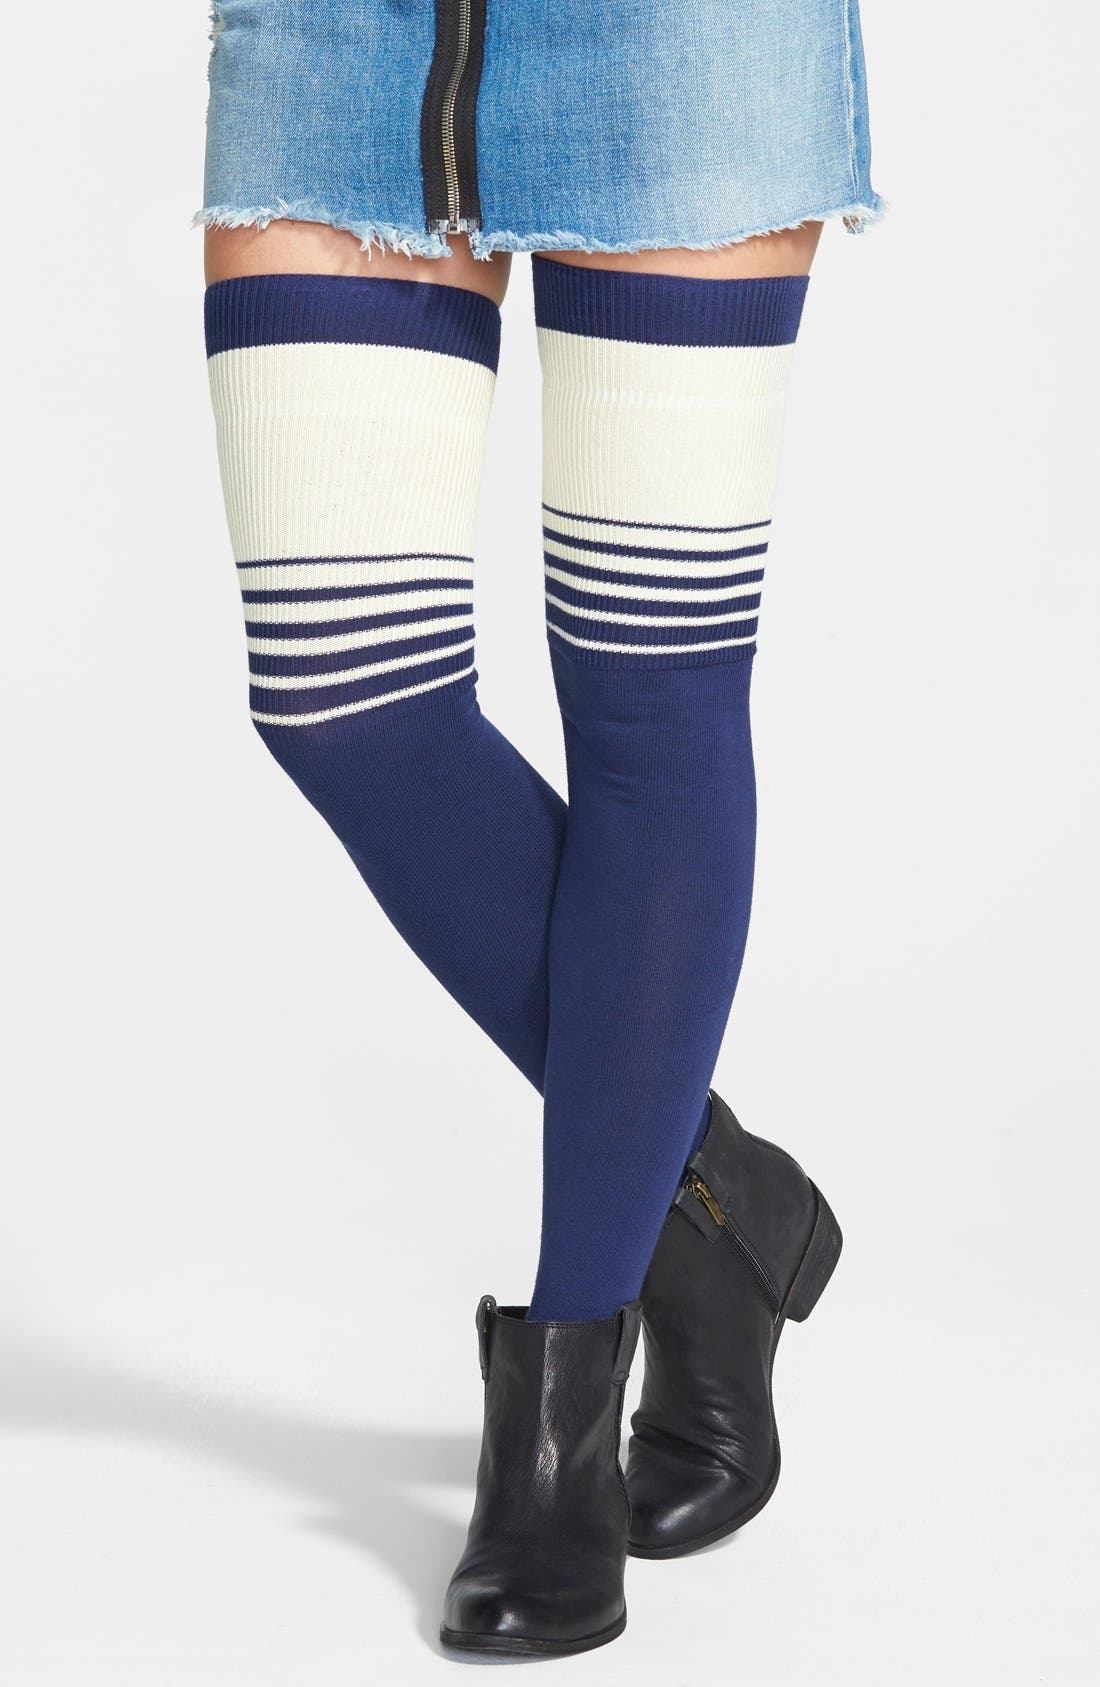 Alternate Image 1 Selected - Free People 'Bowlers' Thigh High Socks